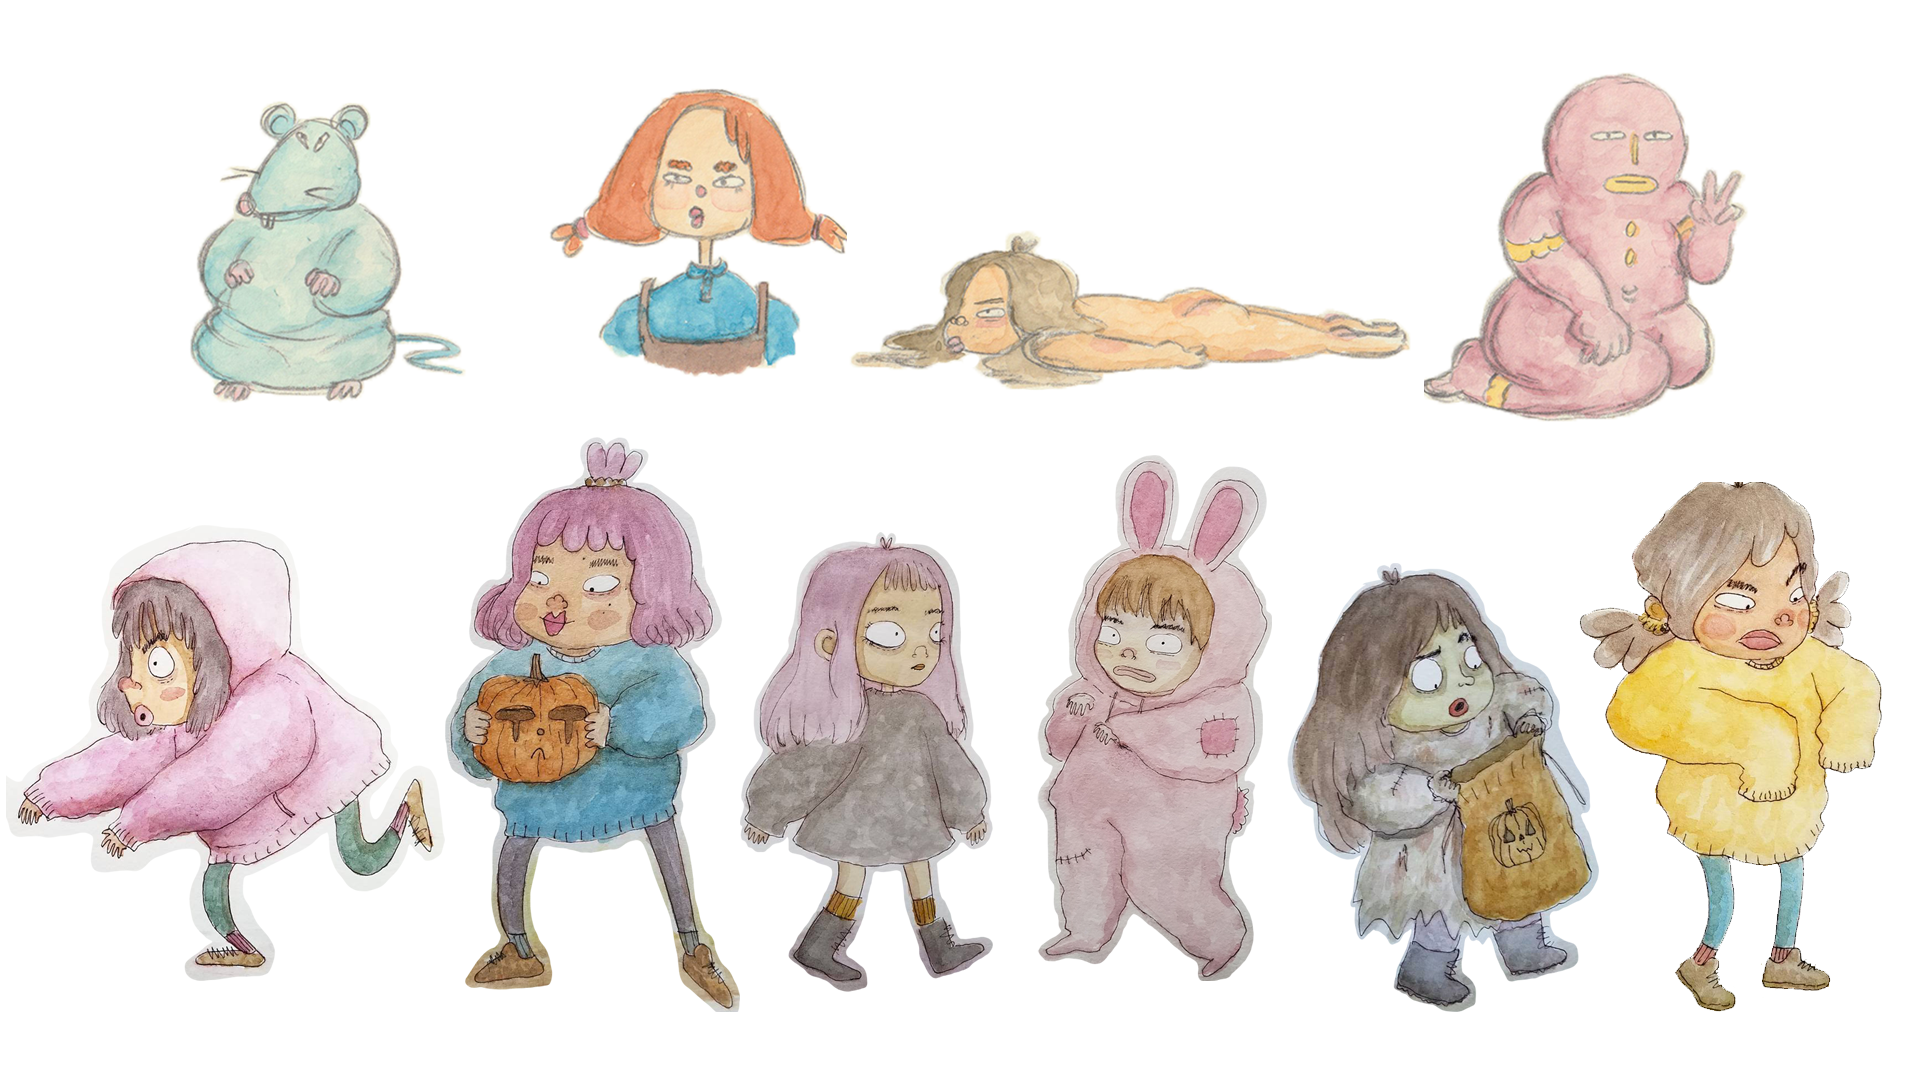 Sketchbook - Characters done in watercolor and pencil/pen.